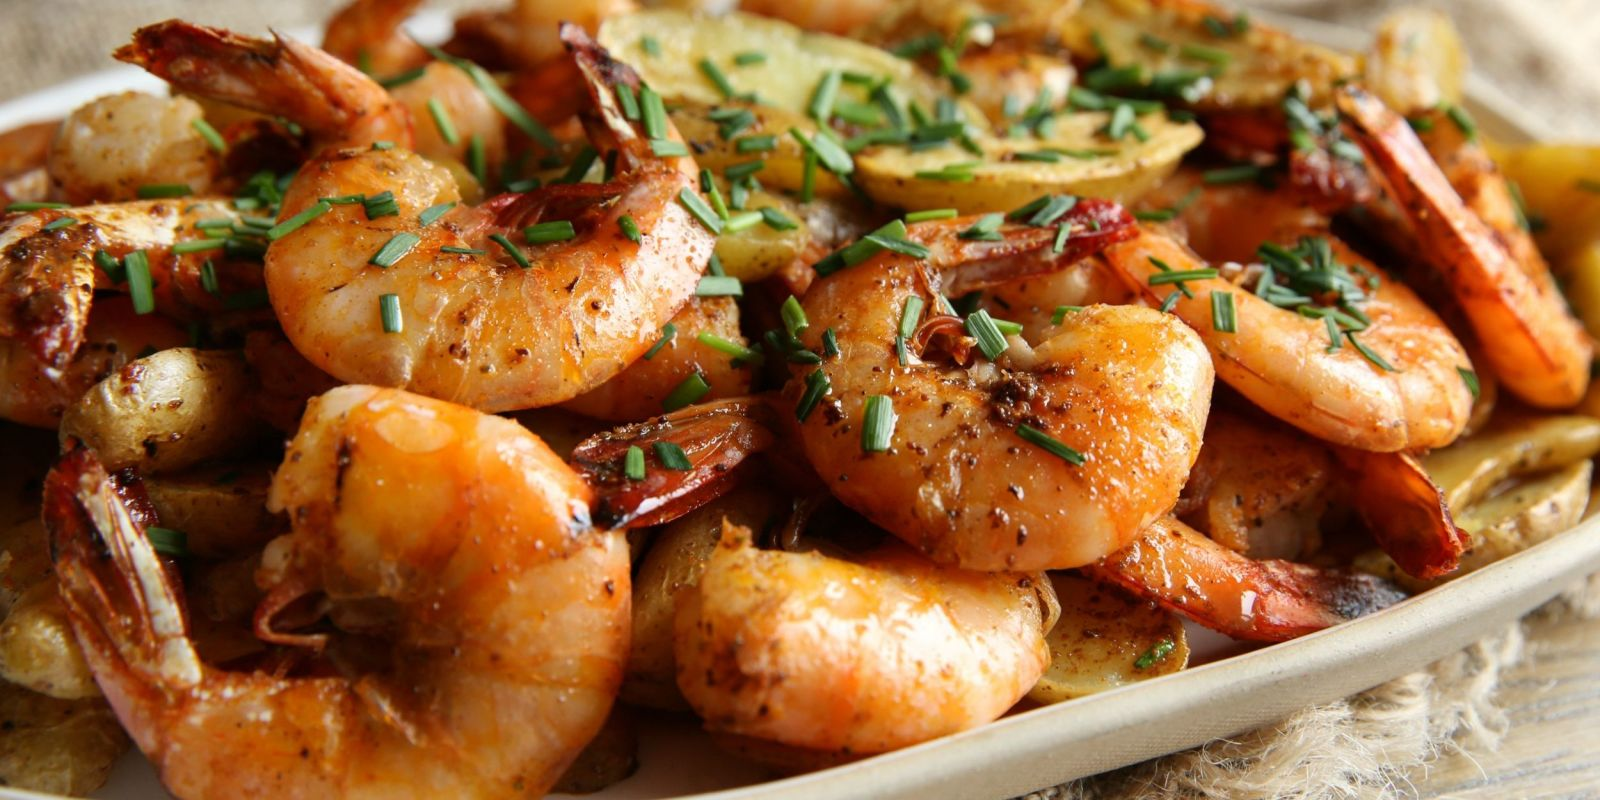 Old Bay Peel And Eat Shrimp With Roasted Fingerling Potatoes Recipe Delish  Old Bay Peel And